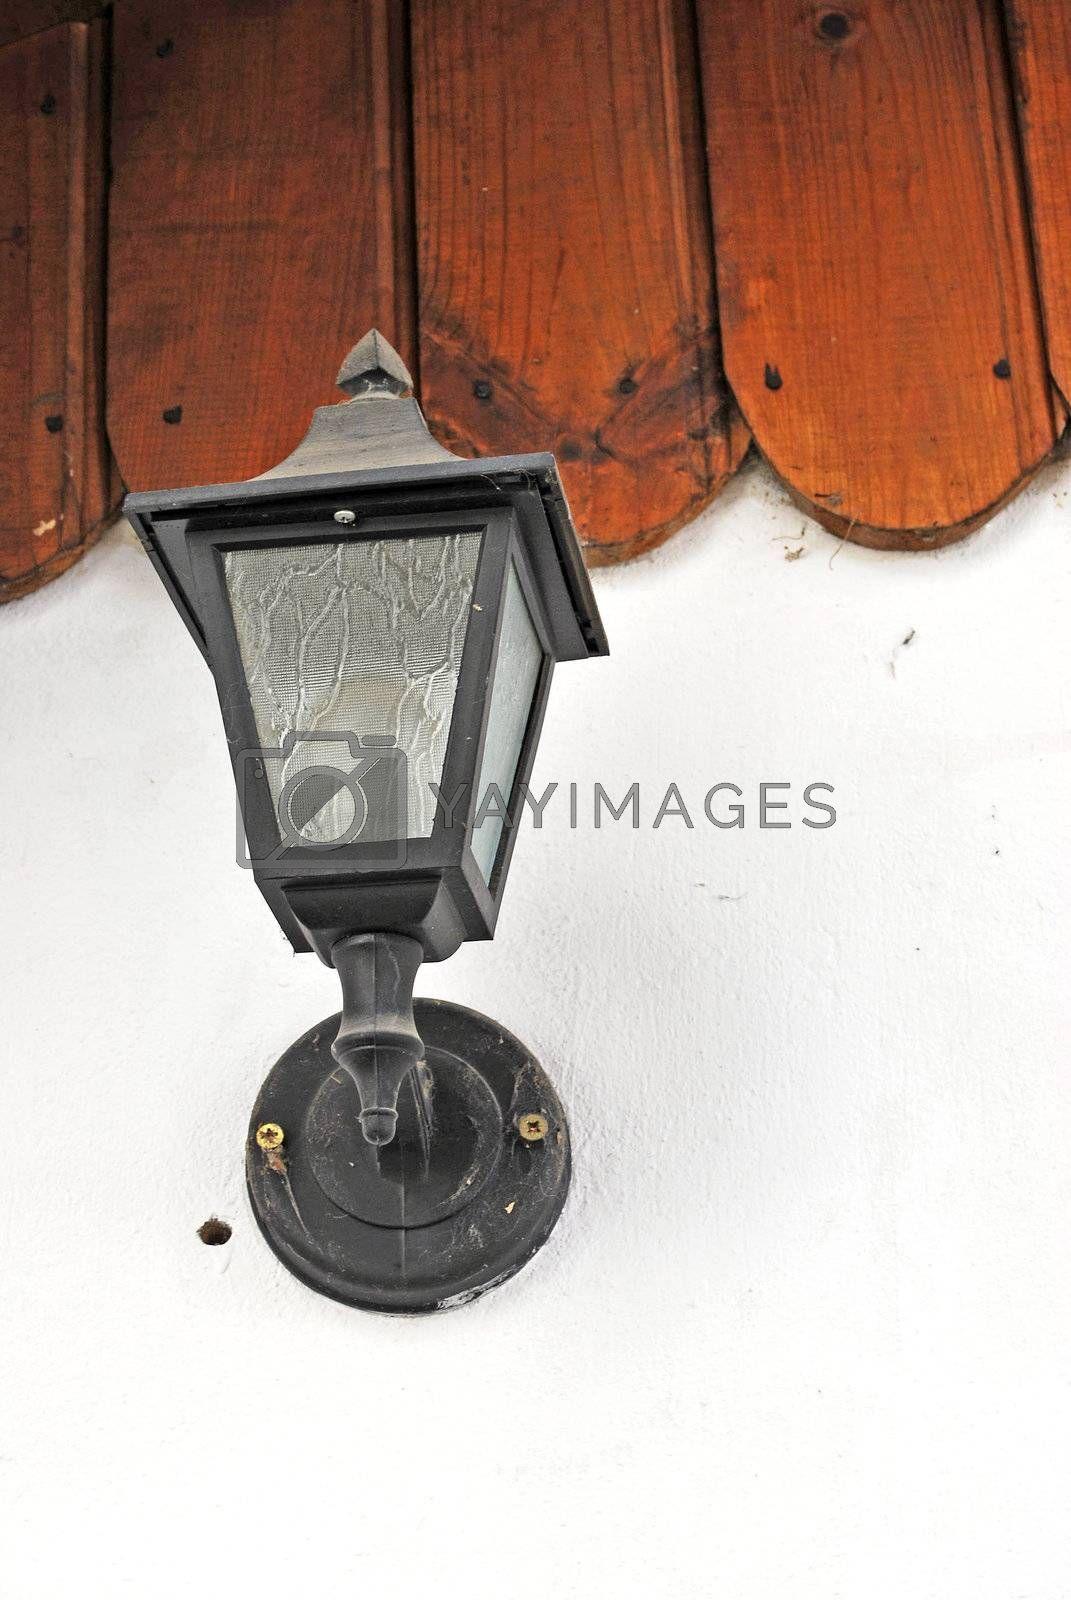 Royalty free image of lamp by Dessie_bg